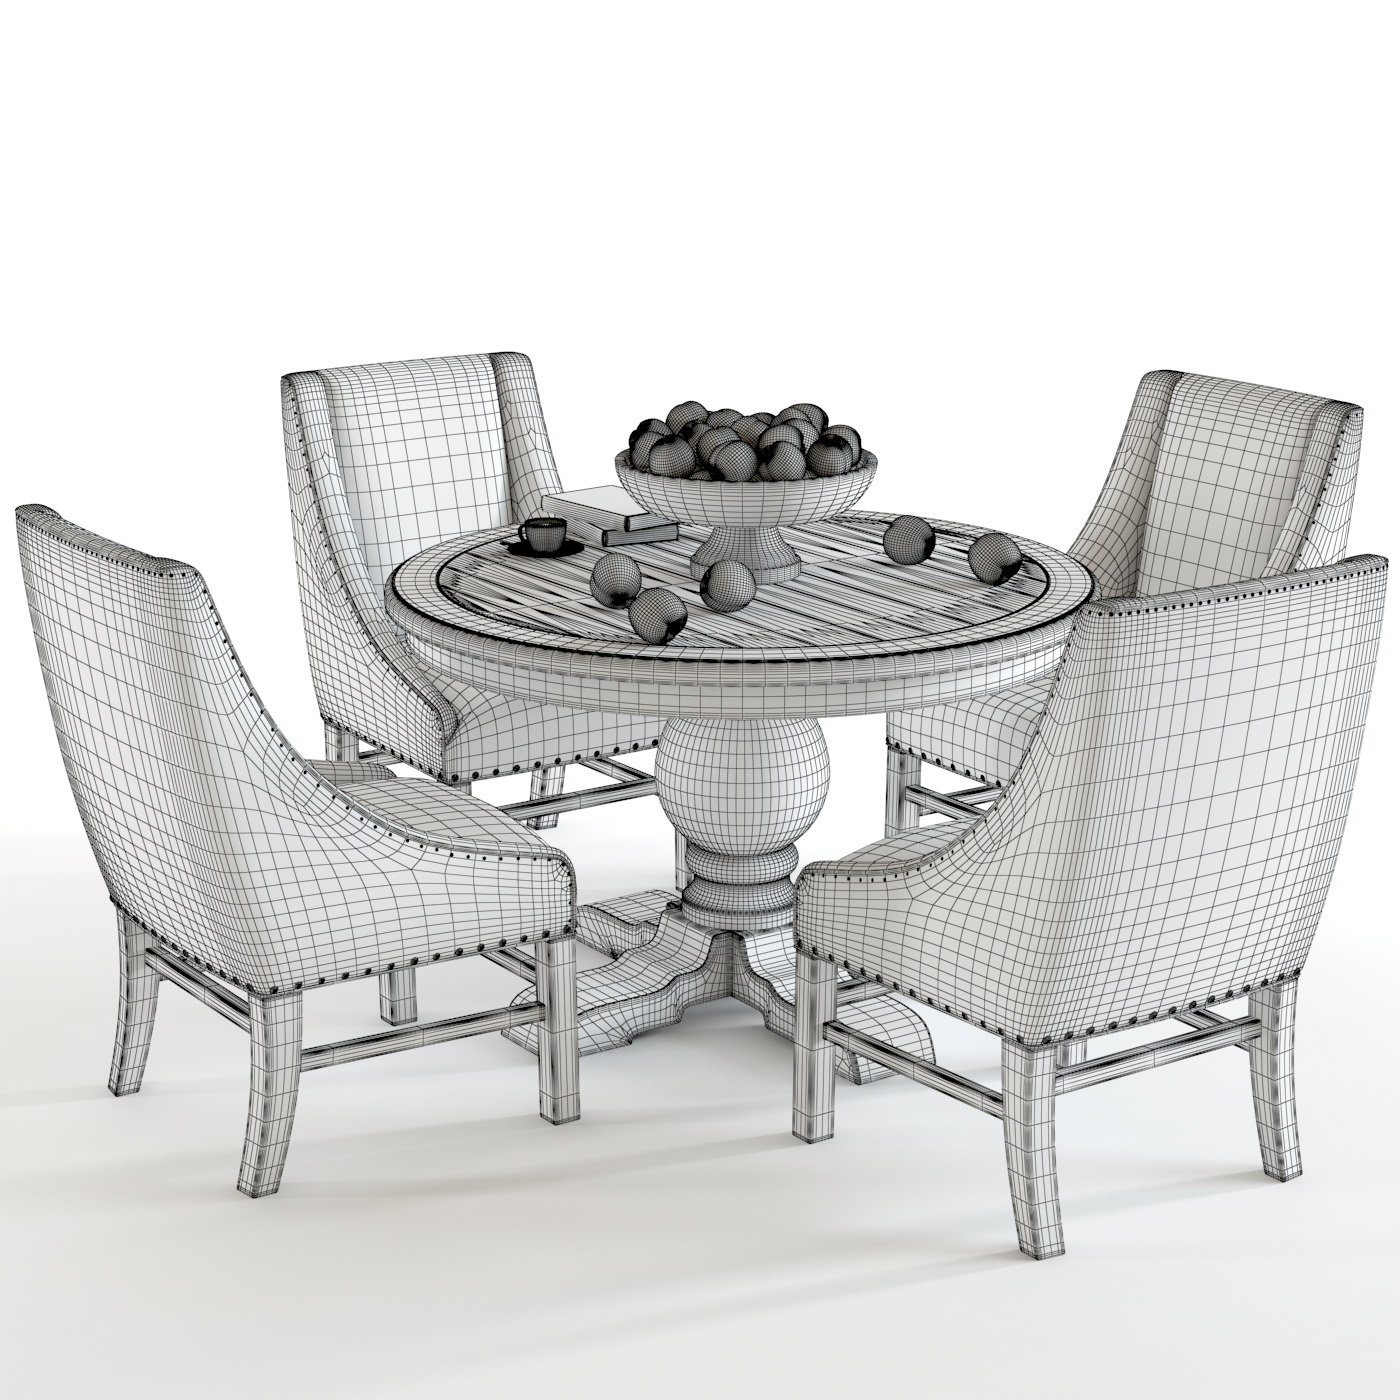 table, 3d modeling service